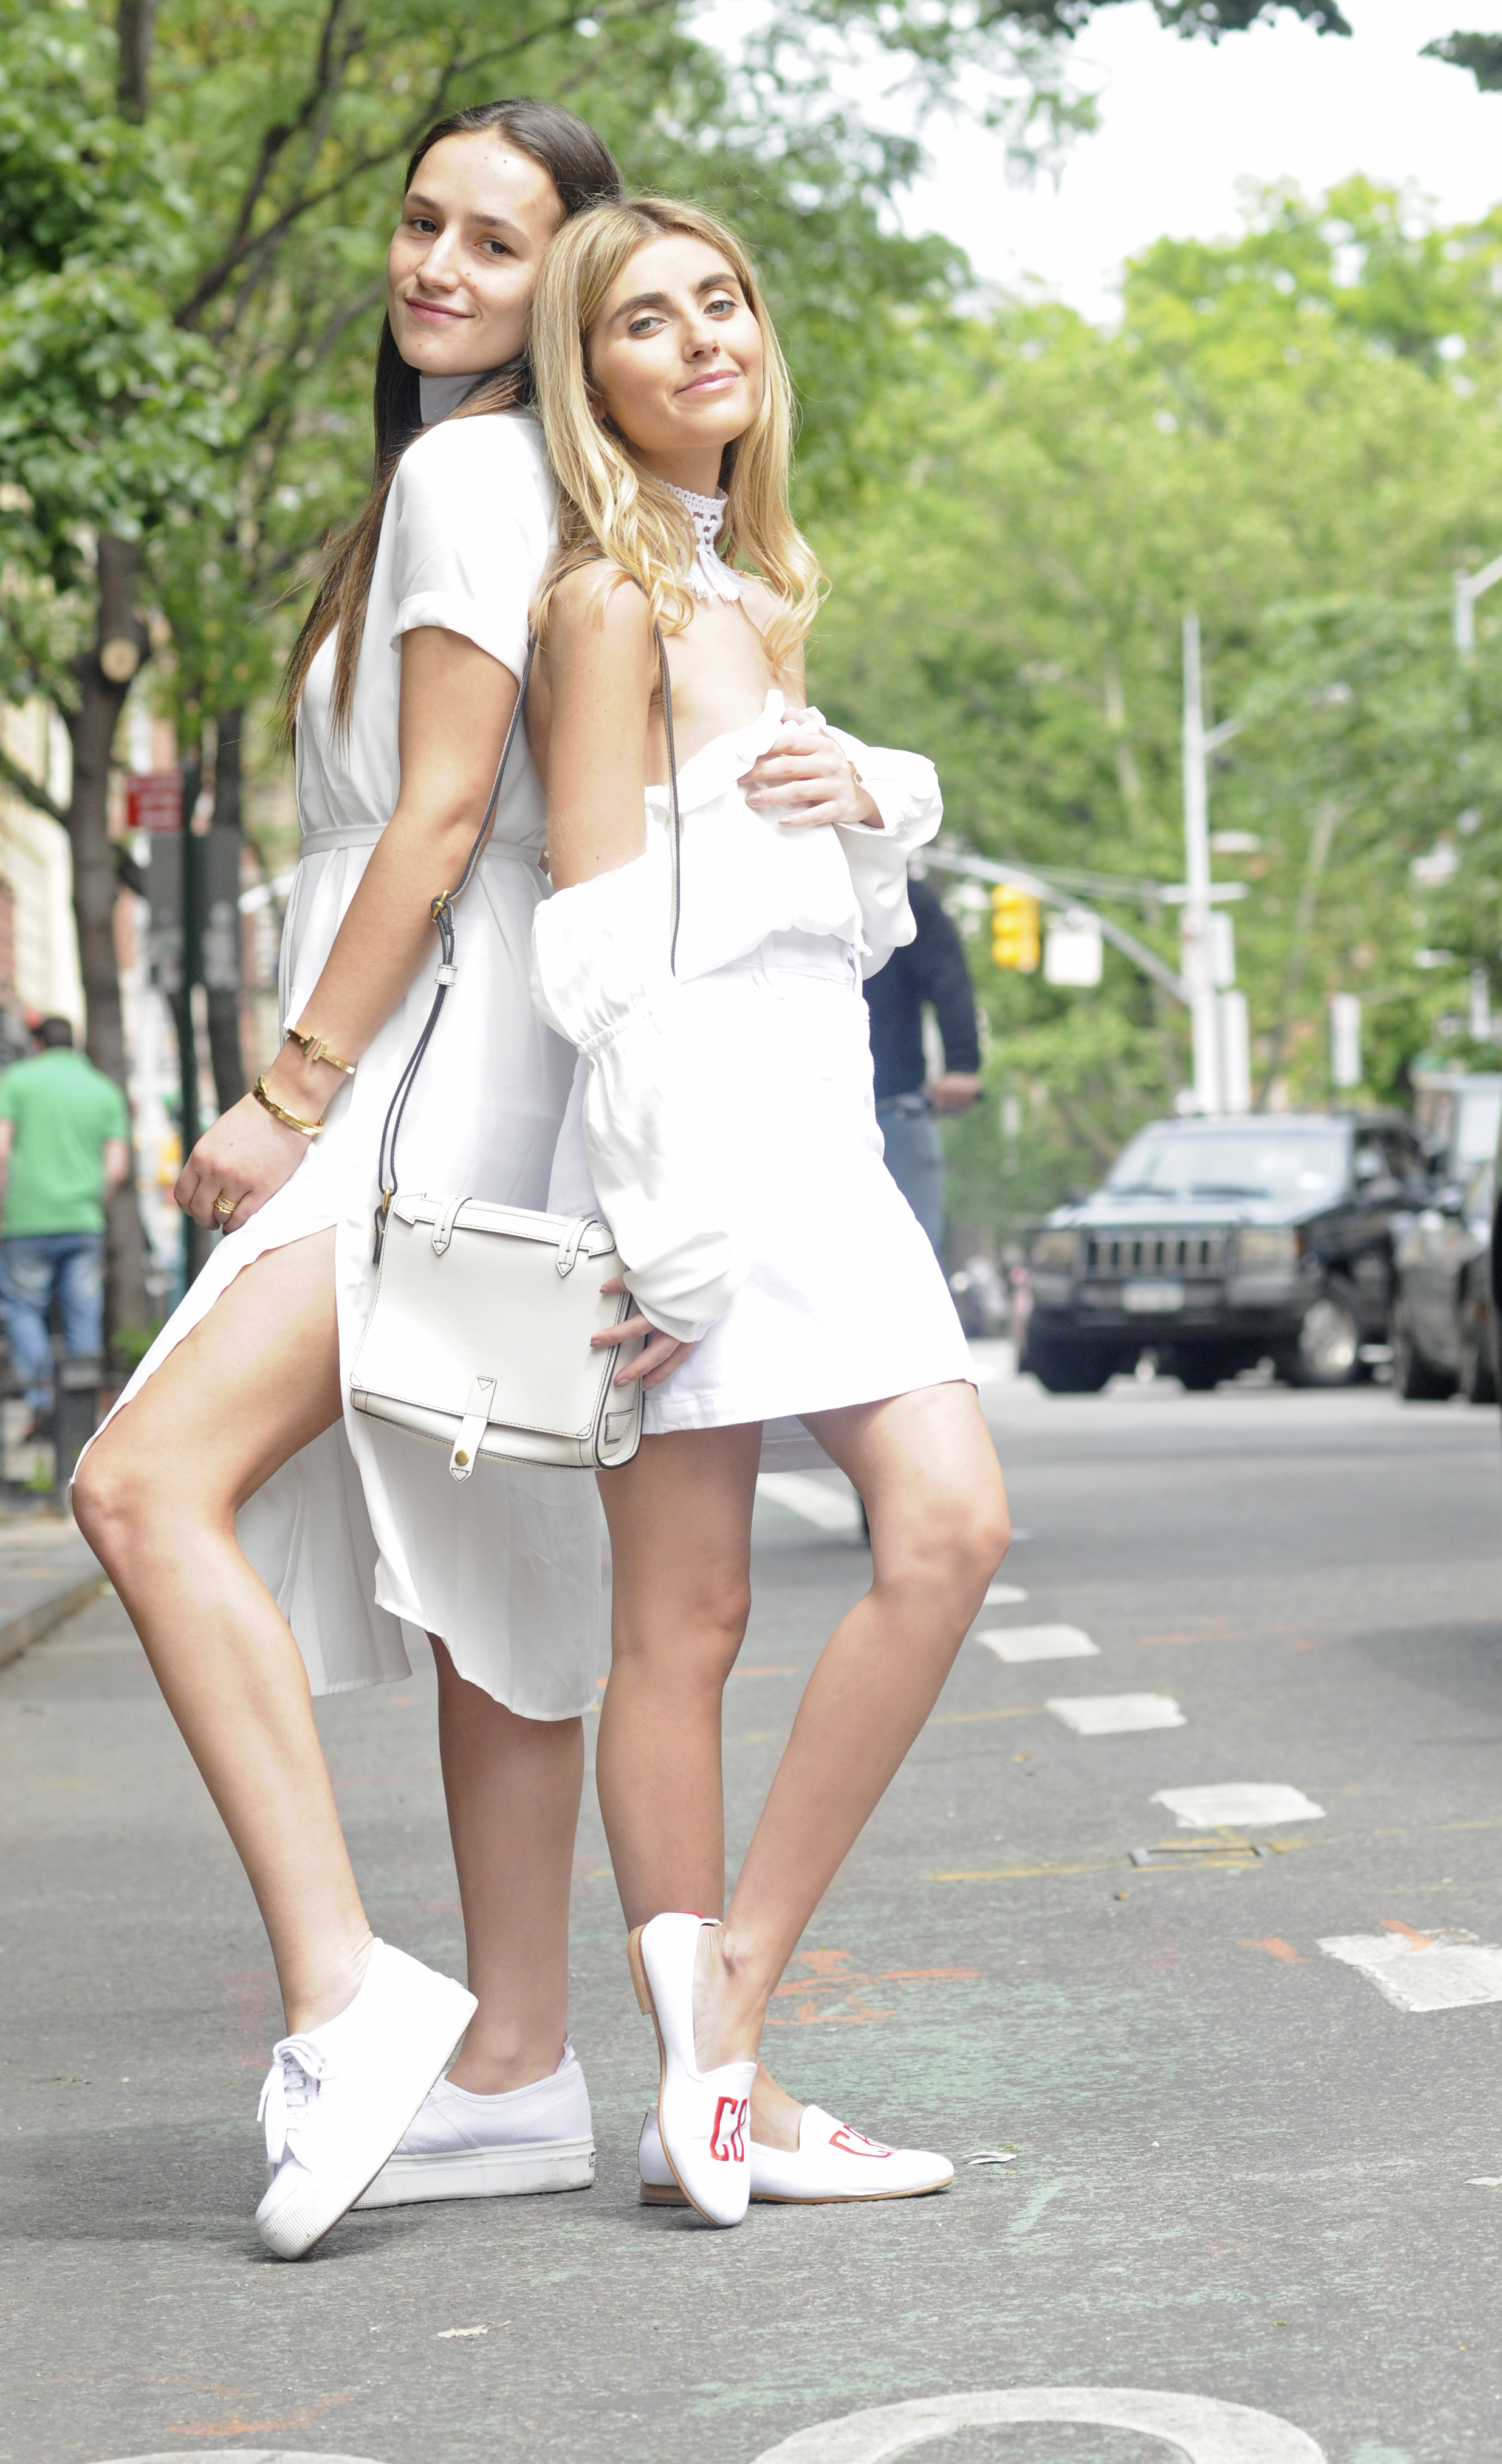 NYC STREET STYLE BICKLEY SISTER BACK TO BACK